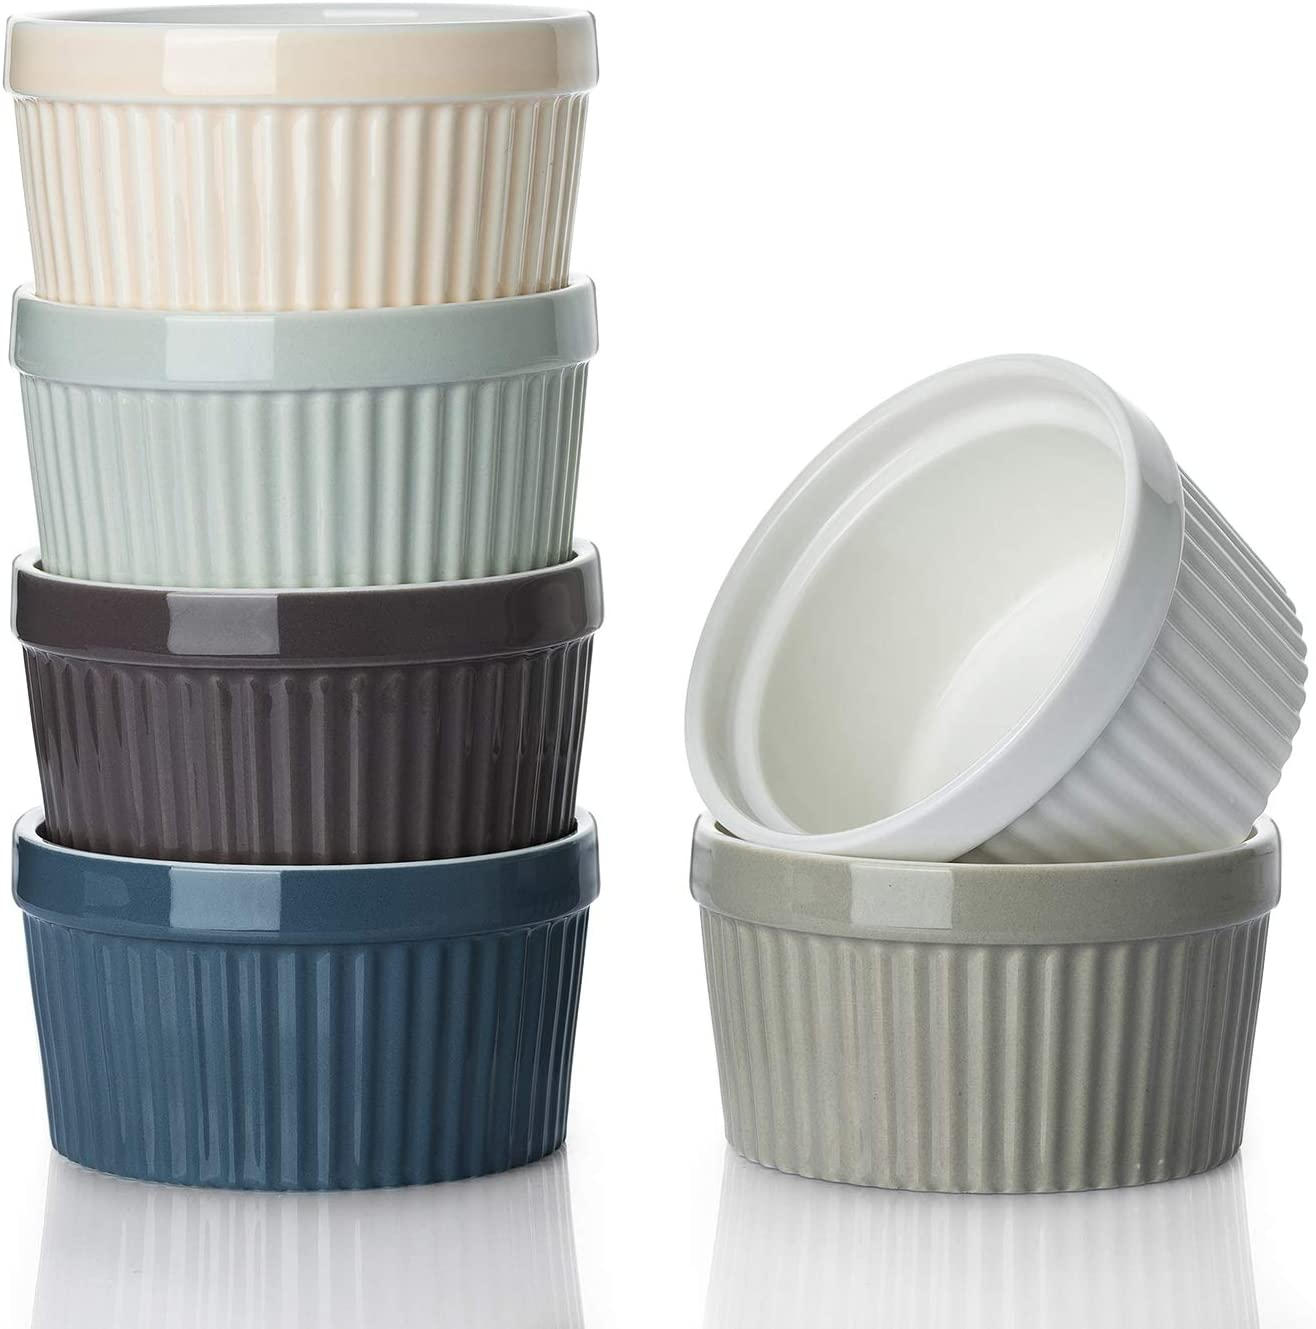 DOWAN 8 Oz Porcelain Ramekins - Souffle Dish Ramekins for Creme Brulee Pudding Oven Safe, Classic Style Ramekins Bowls for Baking, Set of 6, Colorful